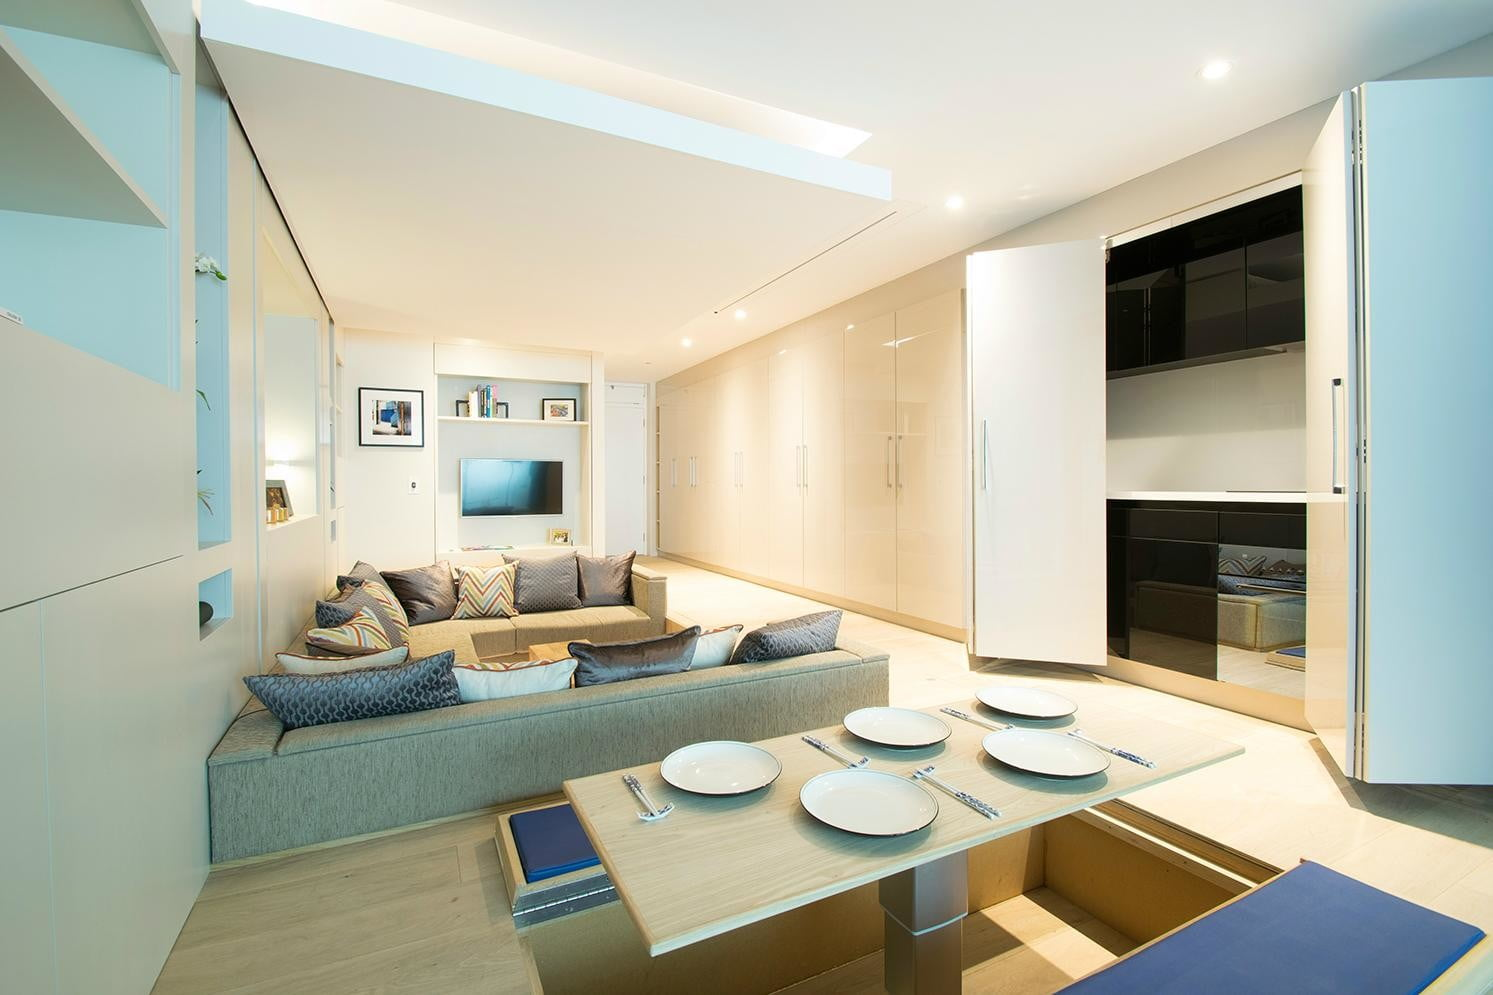 the yo home apartment has a bed that raises to ceiling transformable dining room